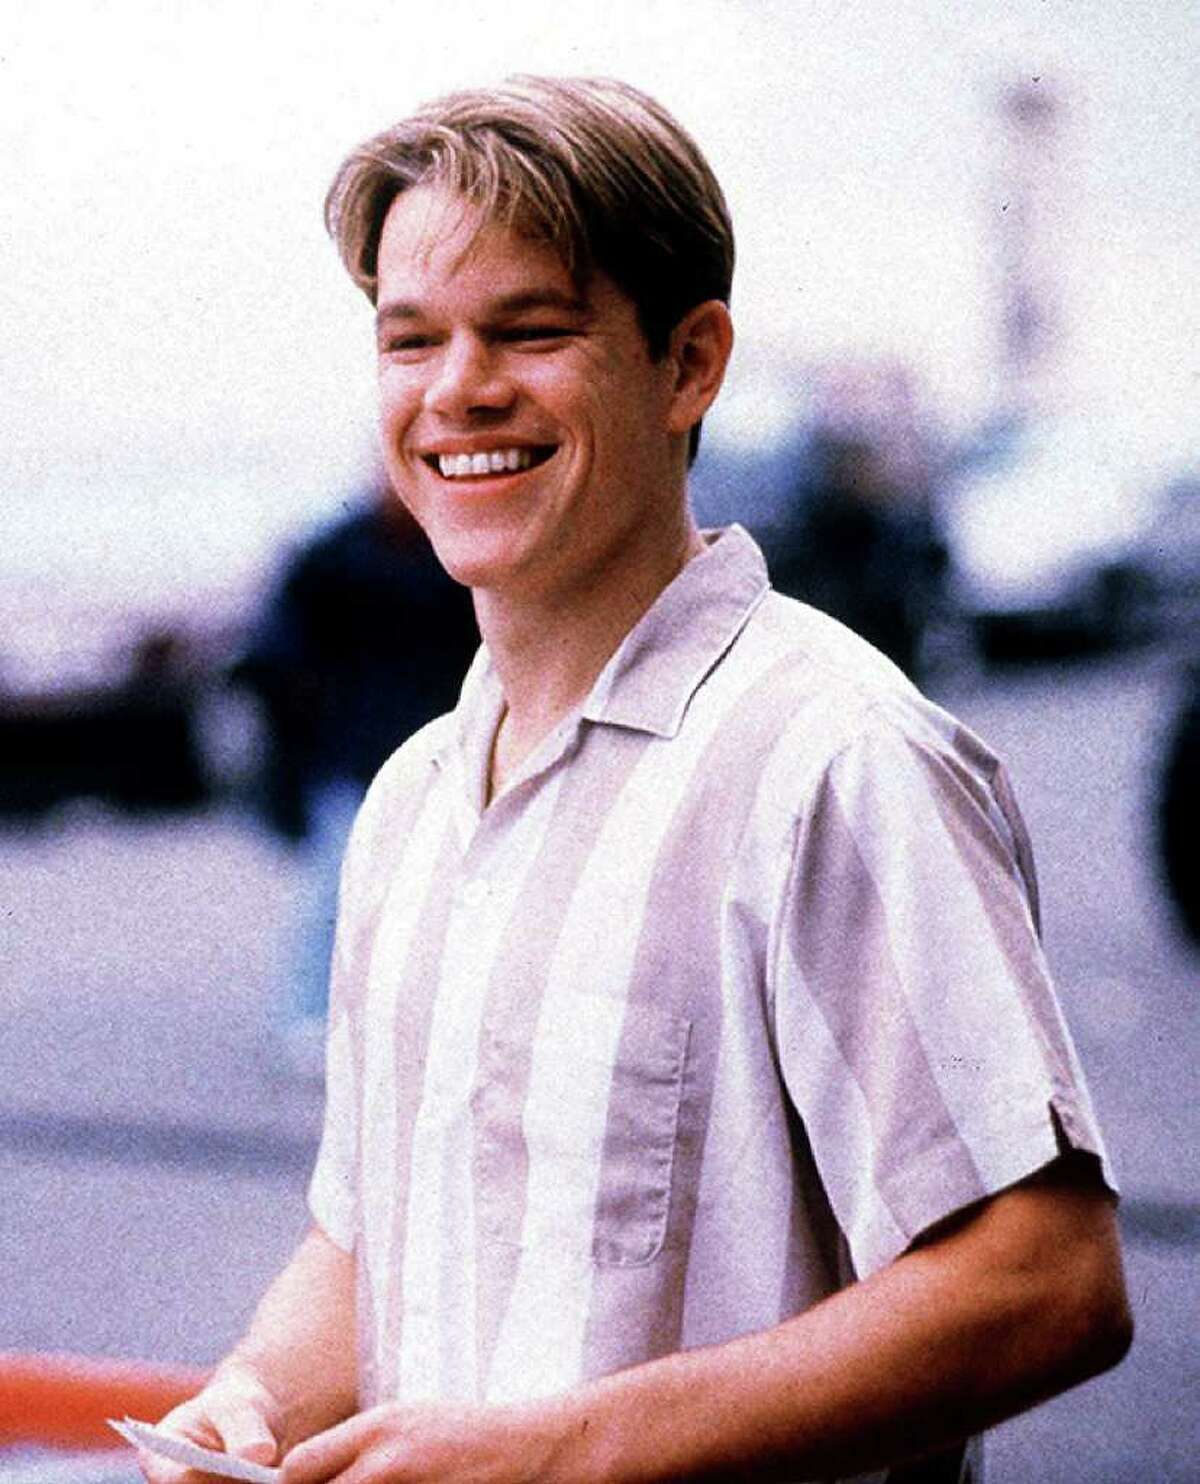 Matt Damon, 1997, age 26.